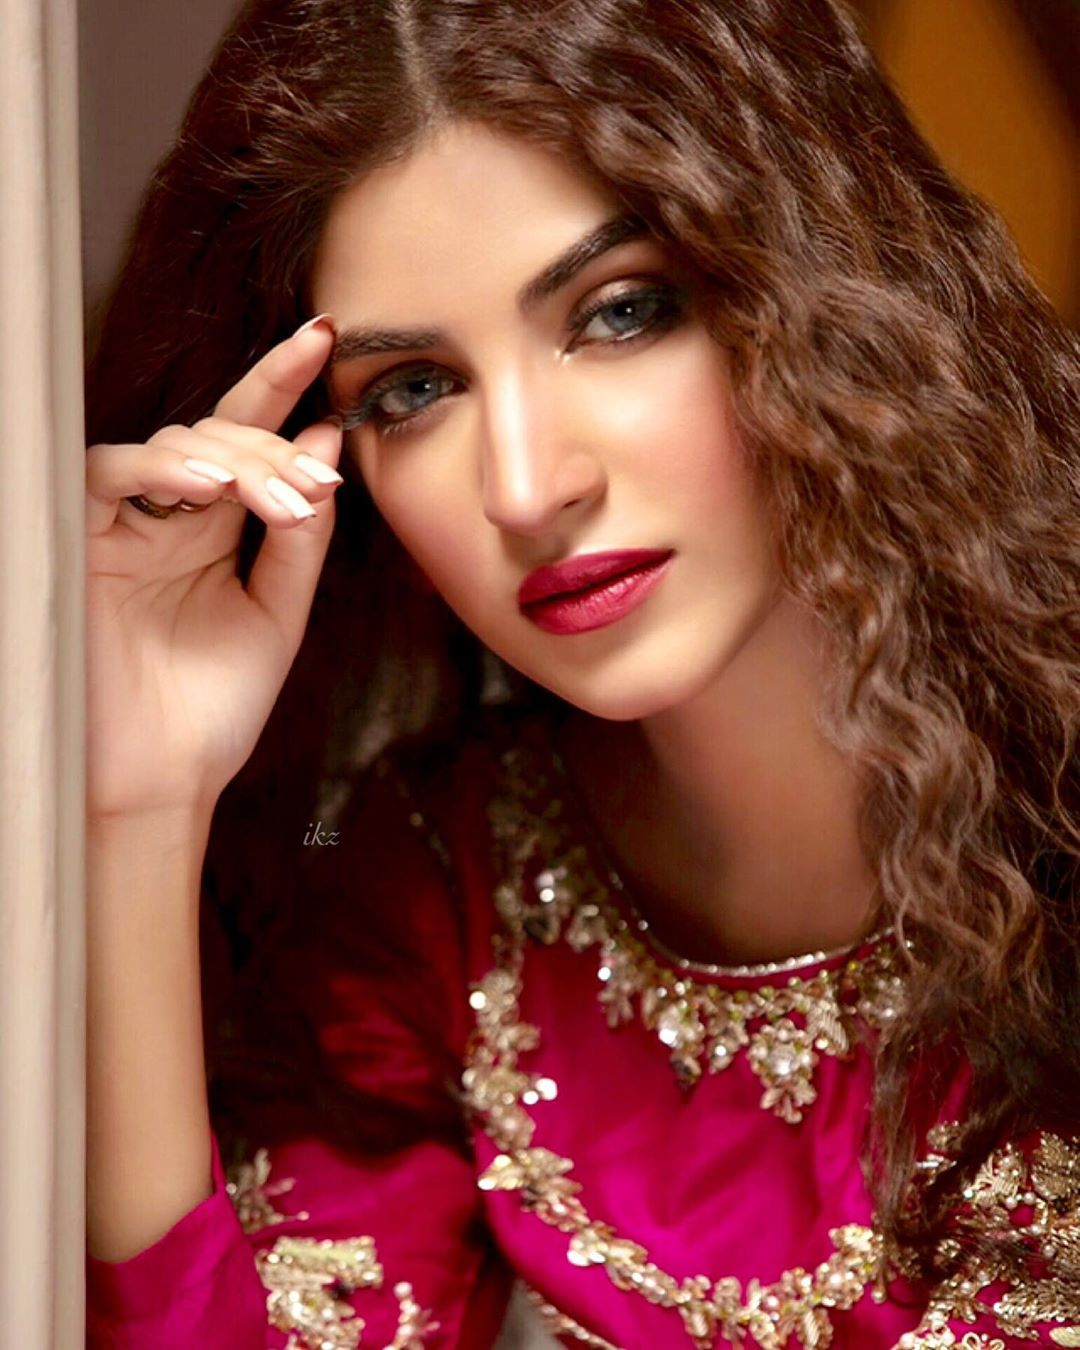 Stunning Pictures of Famous Actress Kinza Hashmi